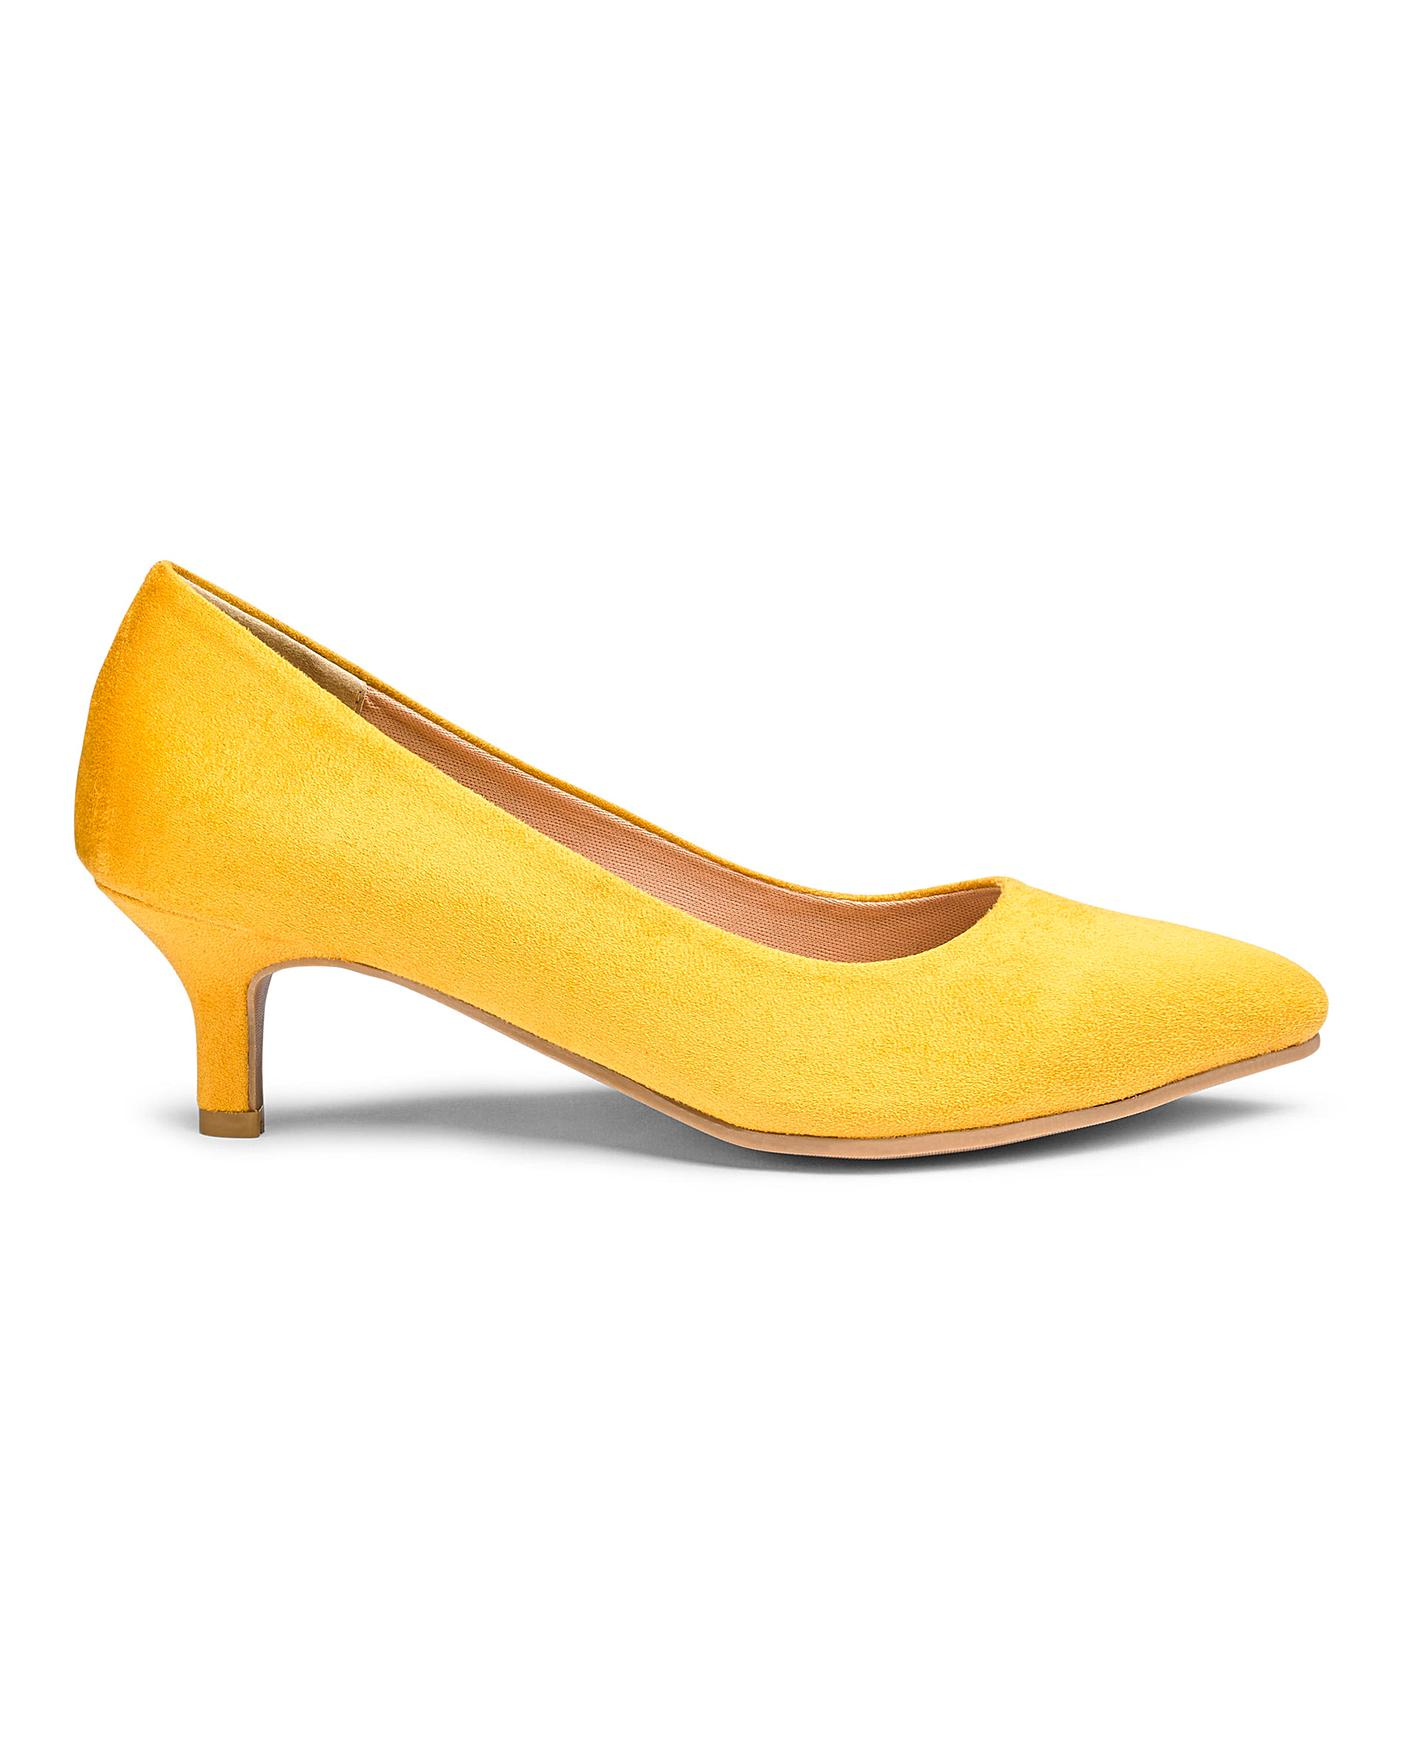 The Talking Shoe   Ecouterre